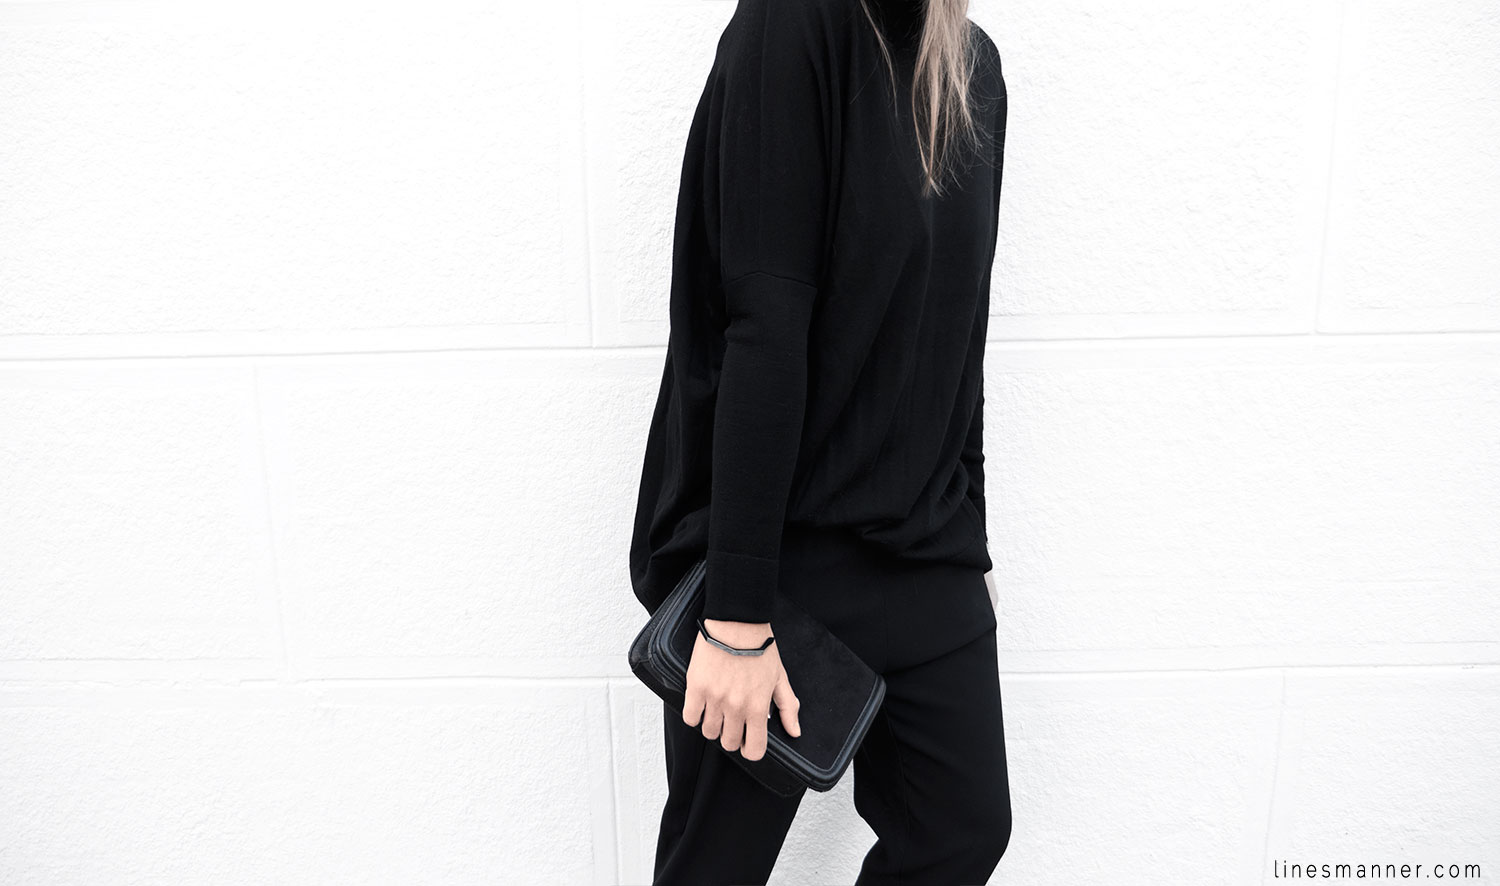 Lines-Manner-Minimalism-Details-Black-All_black_everything-Simplicity-Timeless-Modern-Monochrome-Essential-Basics-Staples_pieces-Outfit-Design-Effortless-10